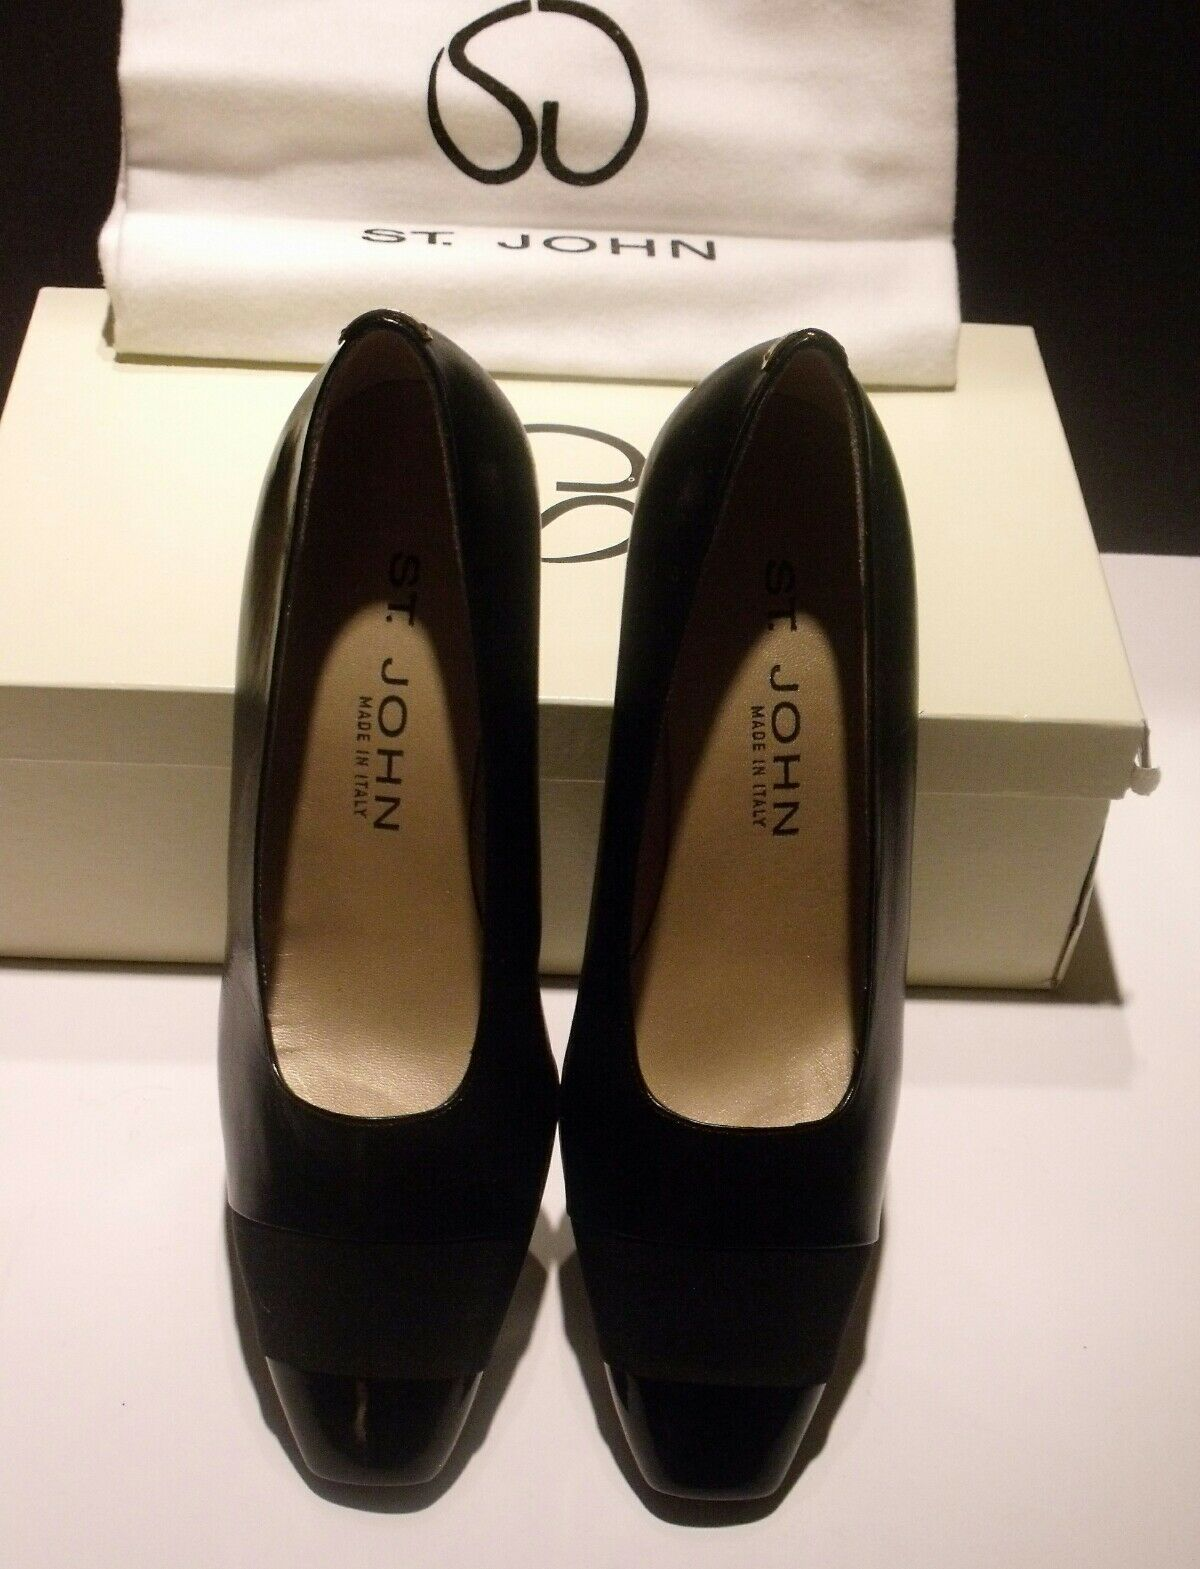 NWT ST JOHN Women's Sz 6 B Gorgeous Black Leather Leather Leather Lazer Heels Pumps db3a6a